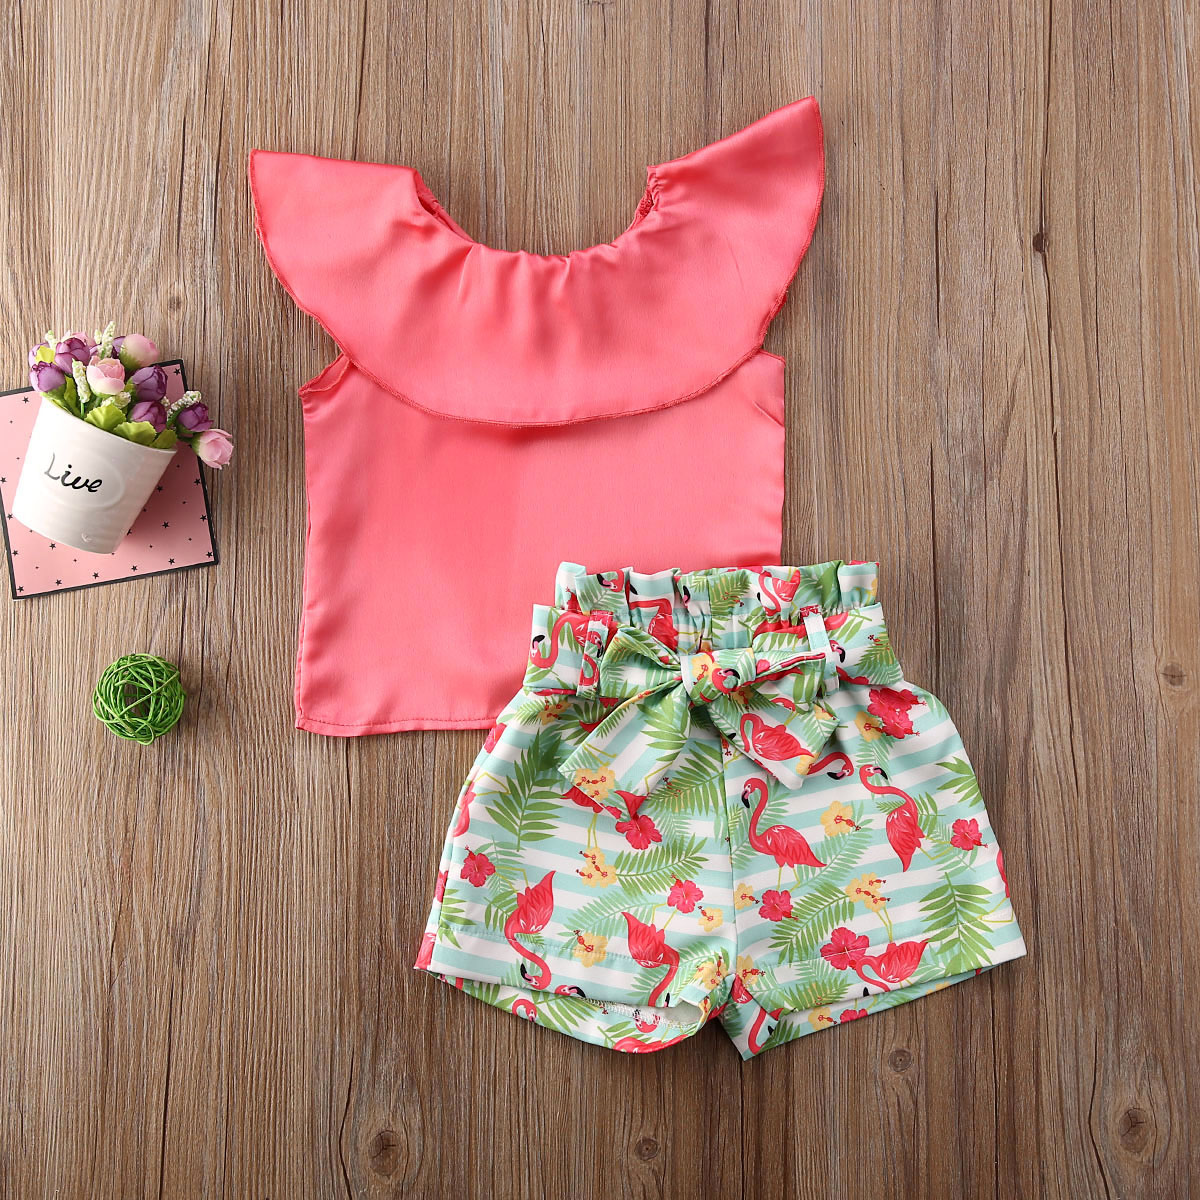 Pudcoco Toddler Baby Girl Clothes Solid Color Ruffle Sleeveless Tops Flamingo Print Short Pants 2Pcs Outfits Clothes 2-7Y